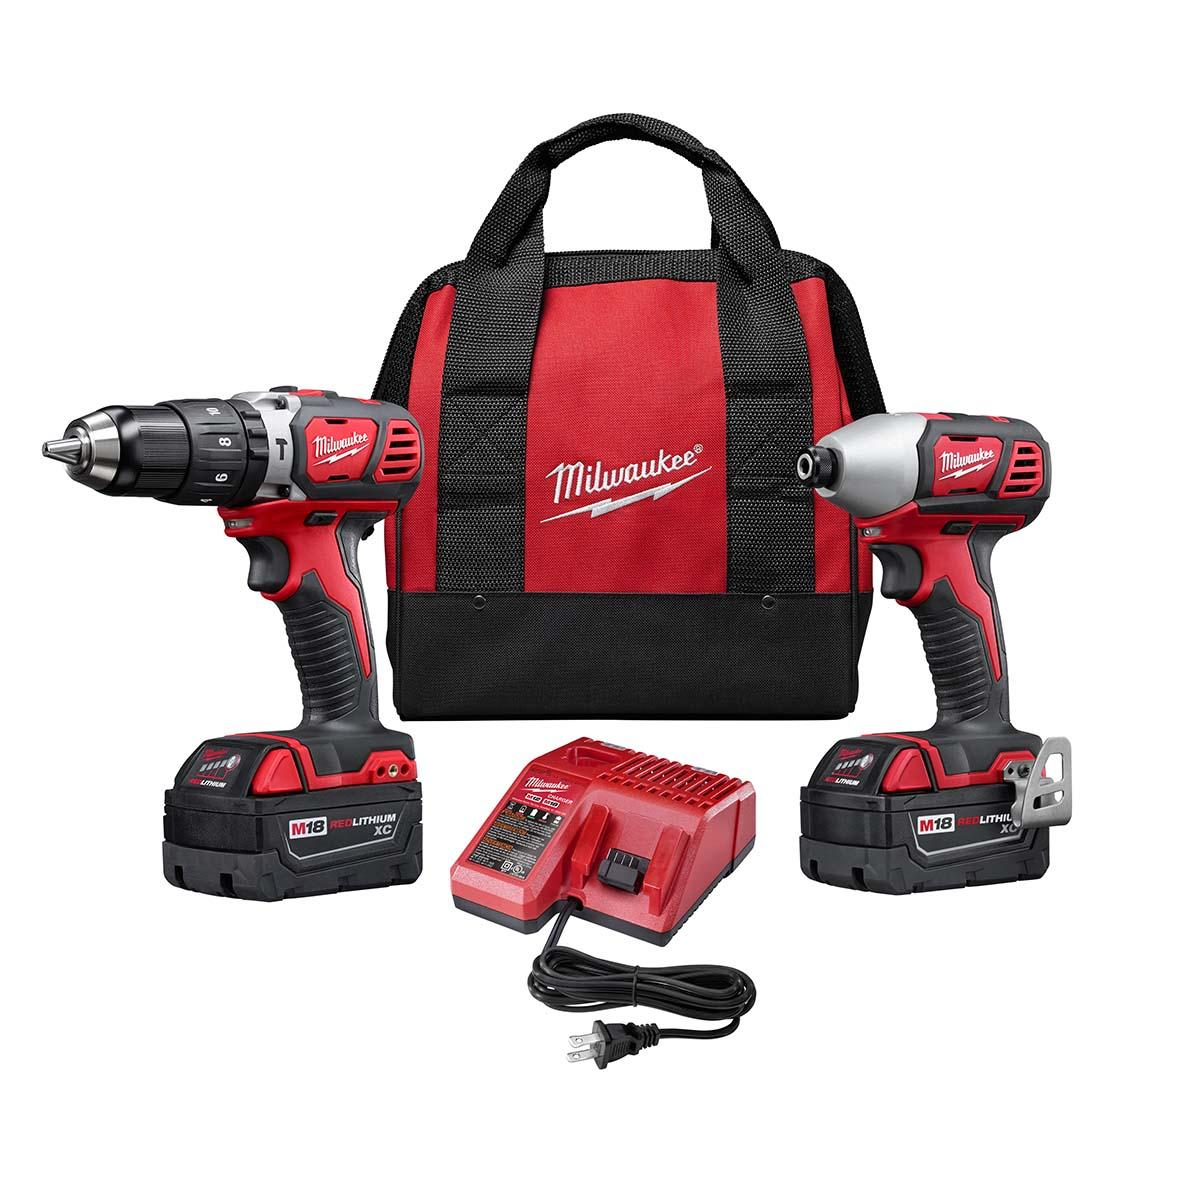 "M18â""¢ Cordless LITHIUM-ION 2-Tool Combo Kit"